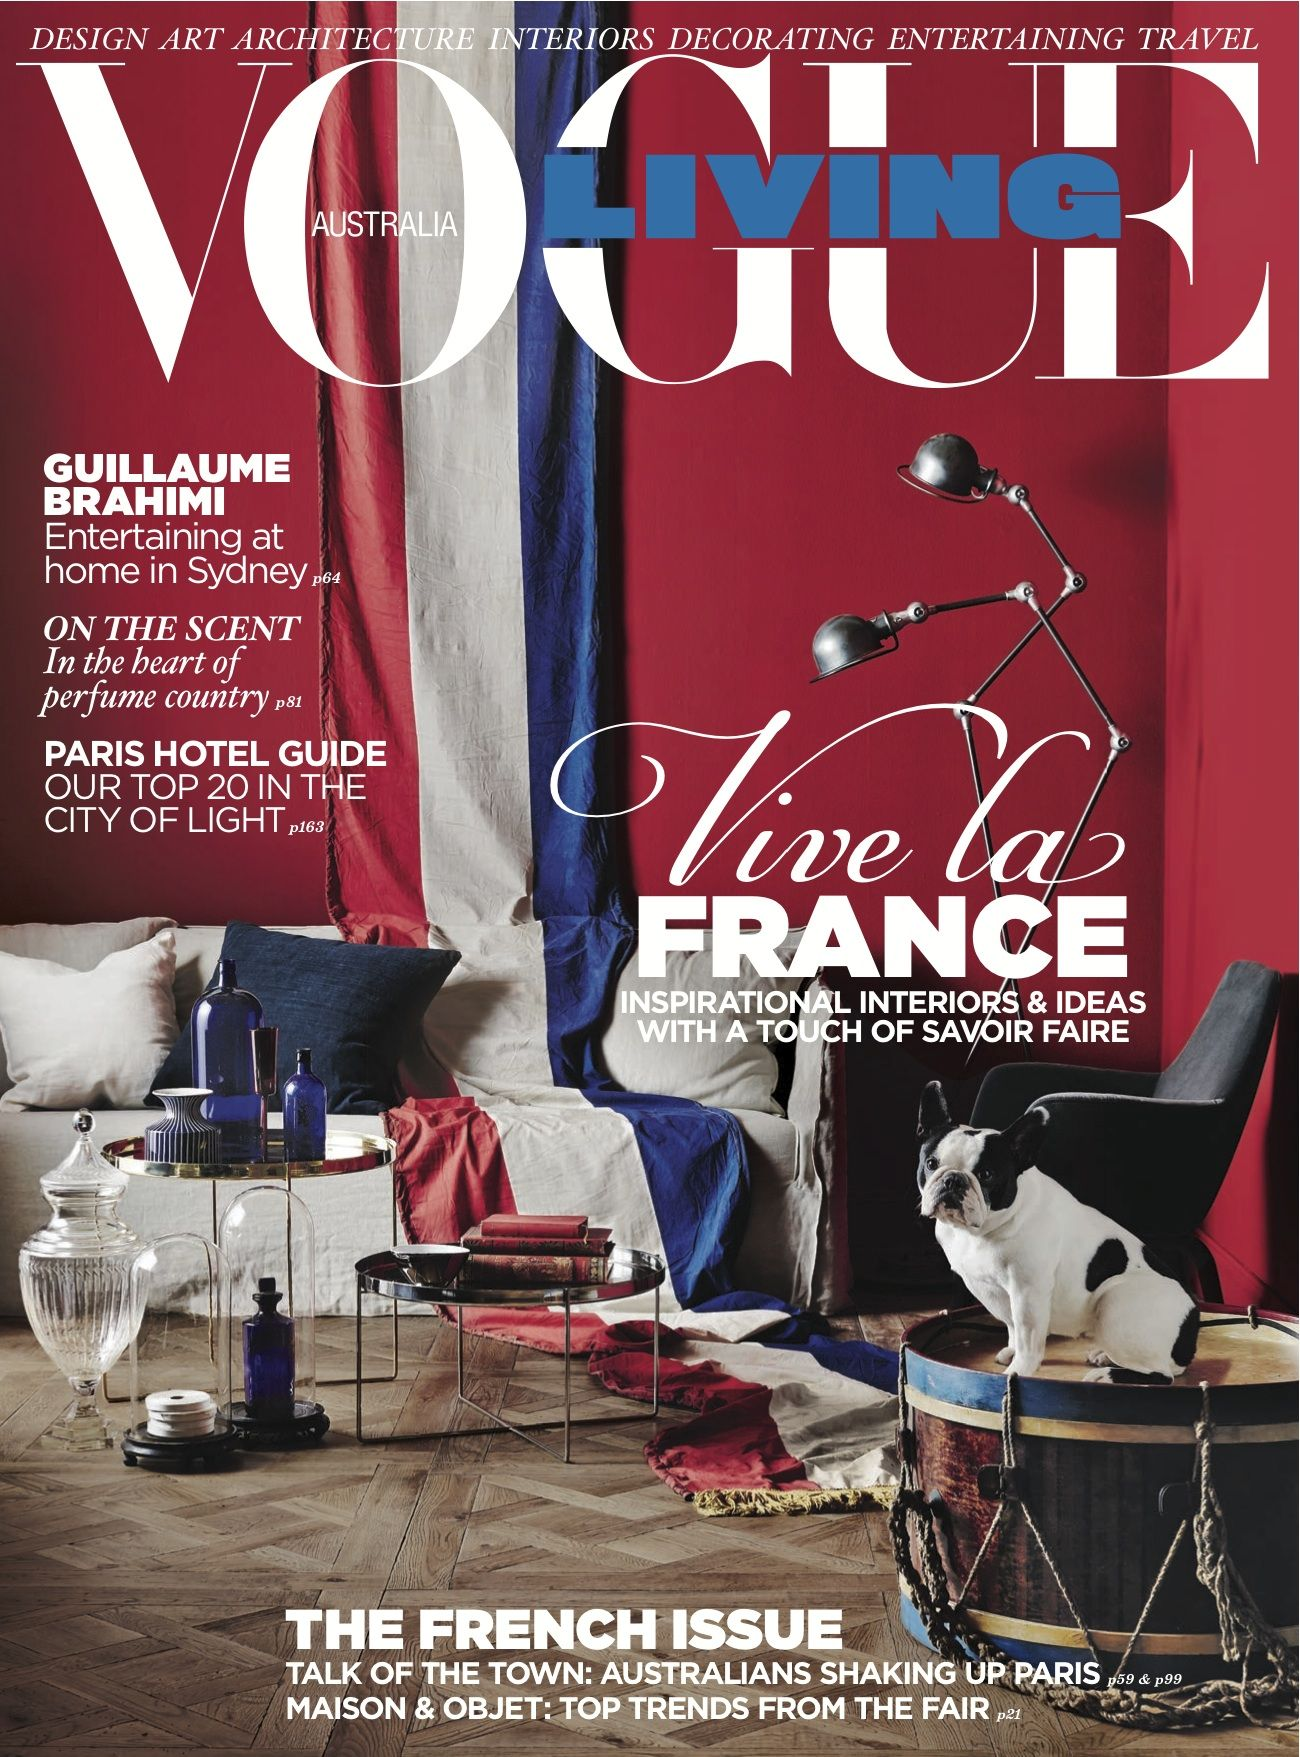 Vogue Living June 2013 | Luxe Media | Vogue living, Interior design